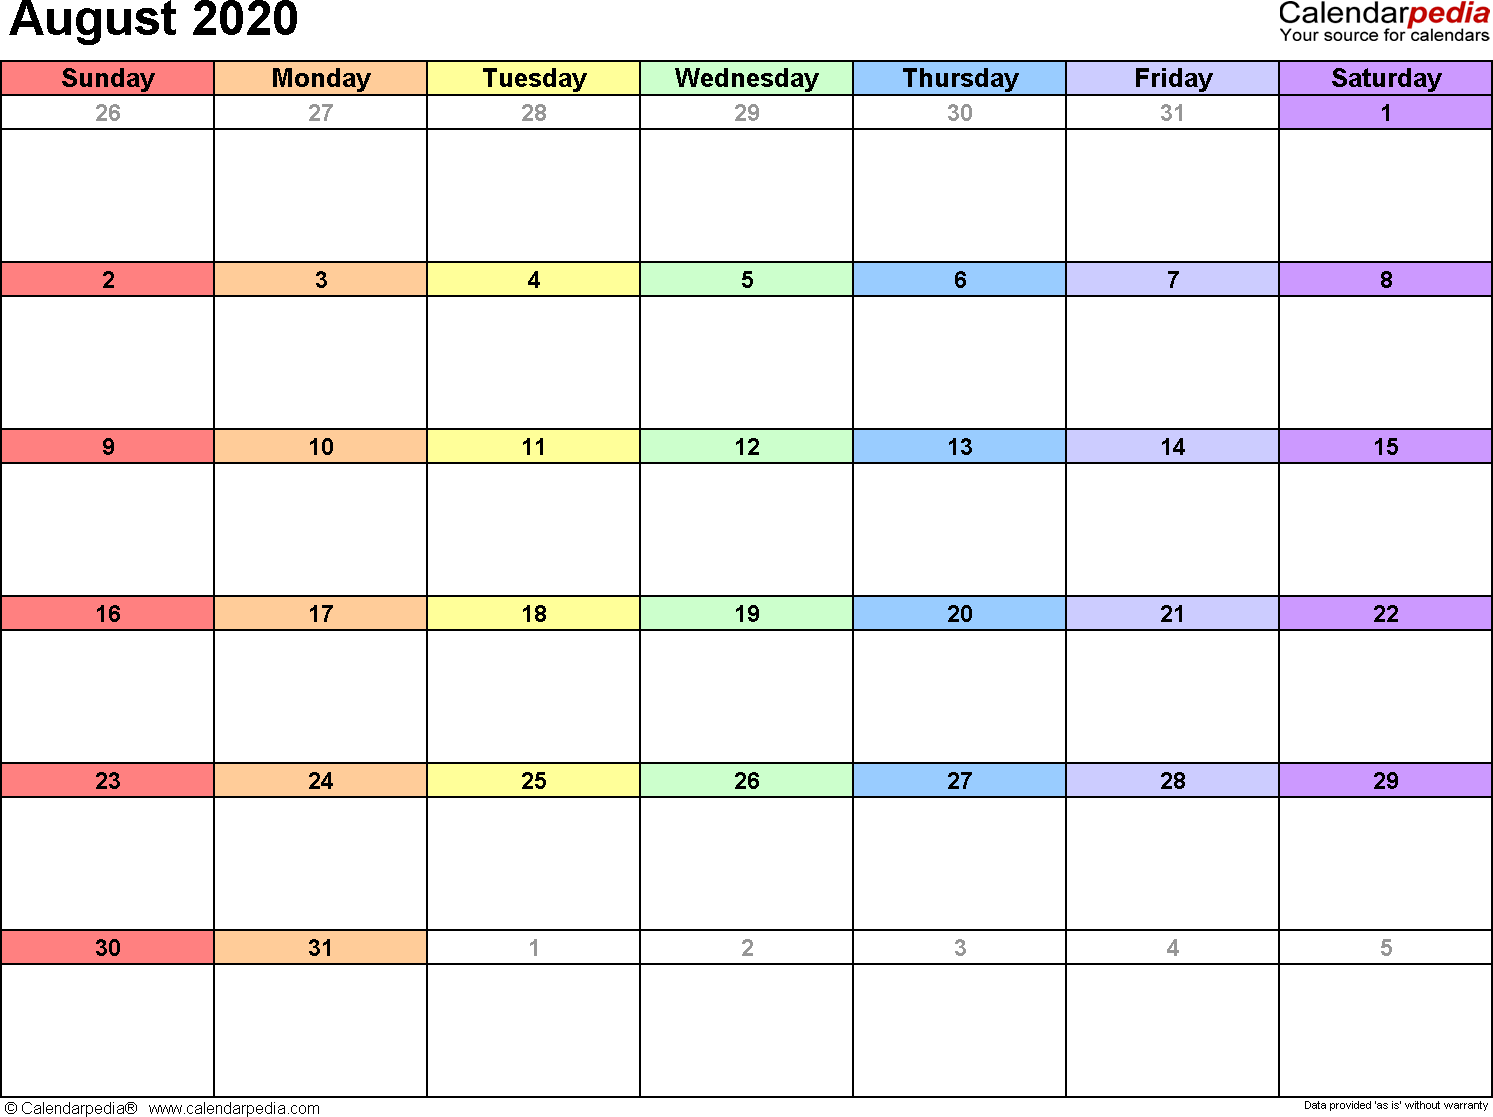 This is an image of Priceless Printable August 2020